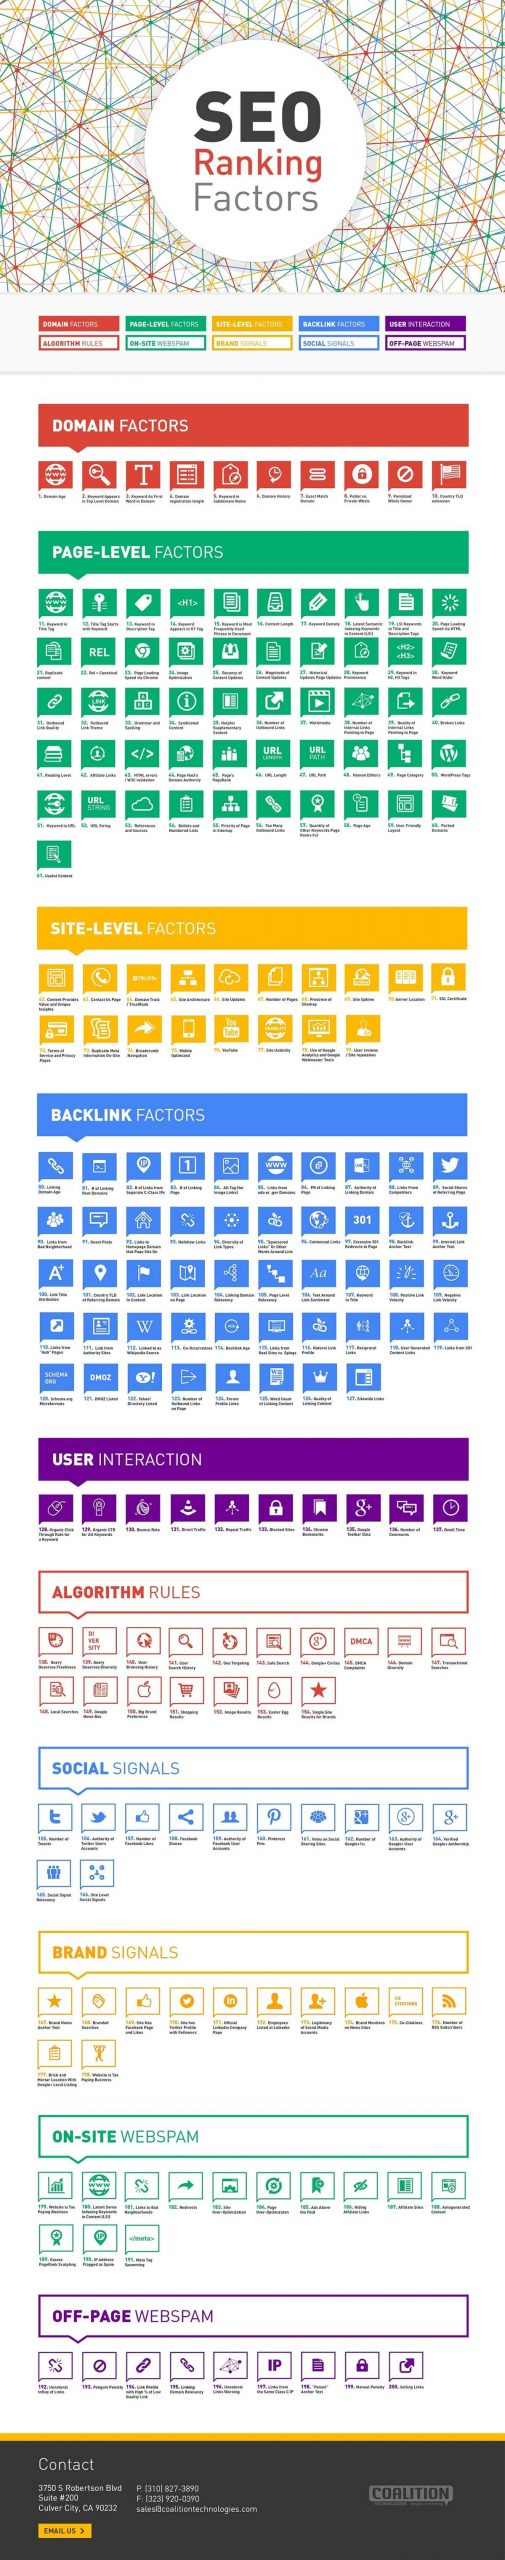 SEO ranking factors infographic compressed